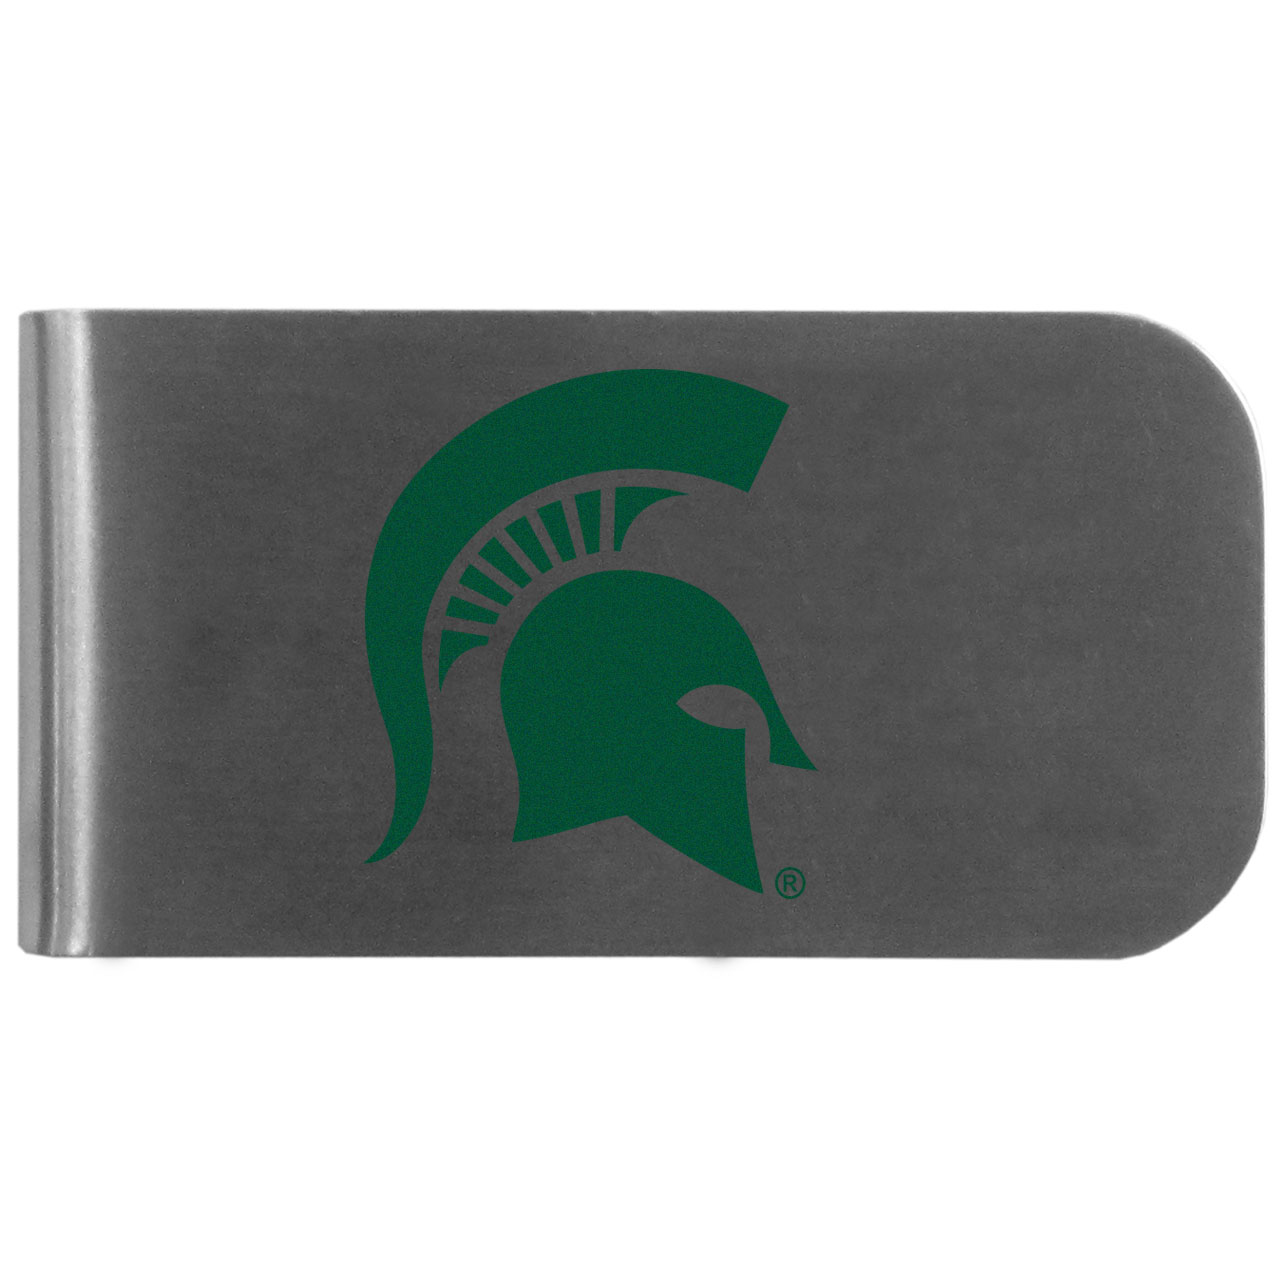 Michigan St. Spartans Logo Bottle Opener Money Clip - This unique money clip features a classic, brushed-metal finish with a handy bottle opener feature on the back. The clip has the Michigan St. Spartans logo expertly printed on the front of the clip.